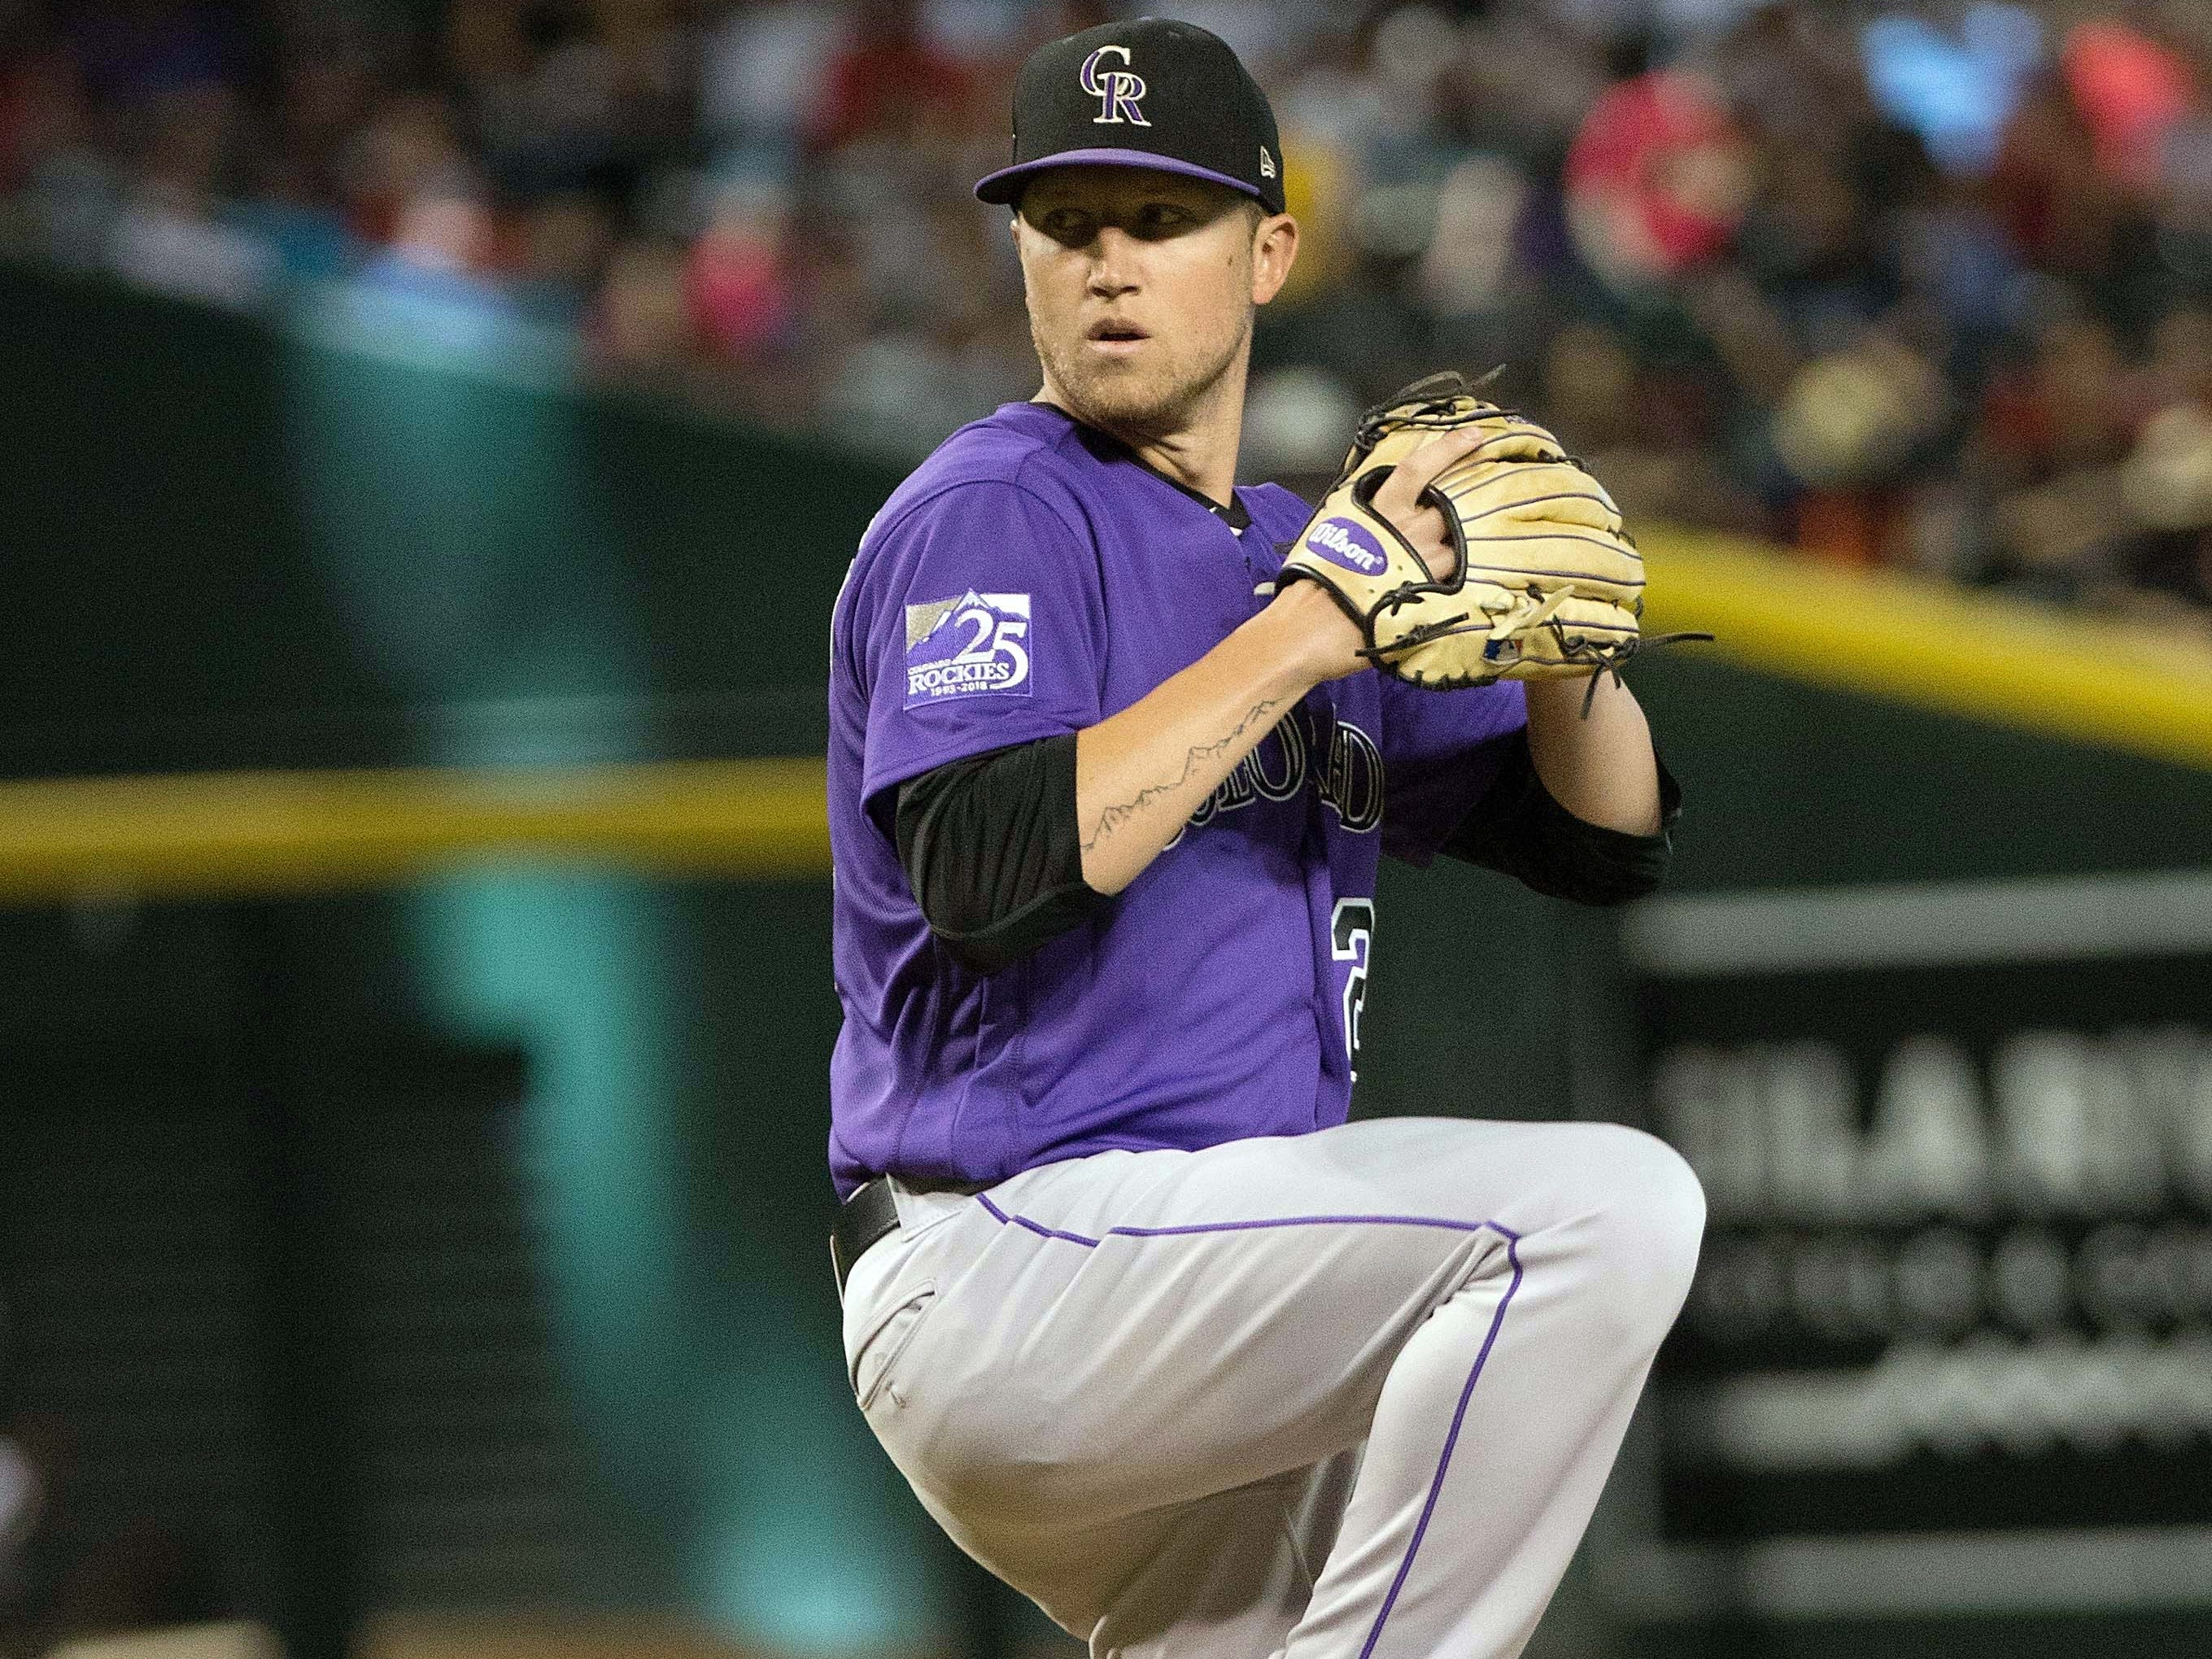 Sep 23, 2018; Phoenix, AZ, USA; Colorado Rockies pitcher Kyle Freeland (21) on the mound during the first inning against the Arizona Diamondbacks at Chase Field. 